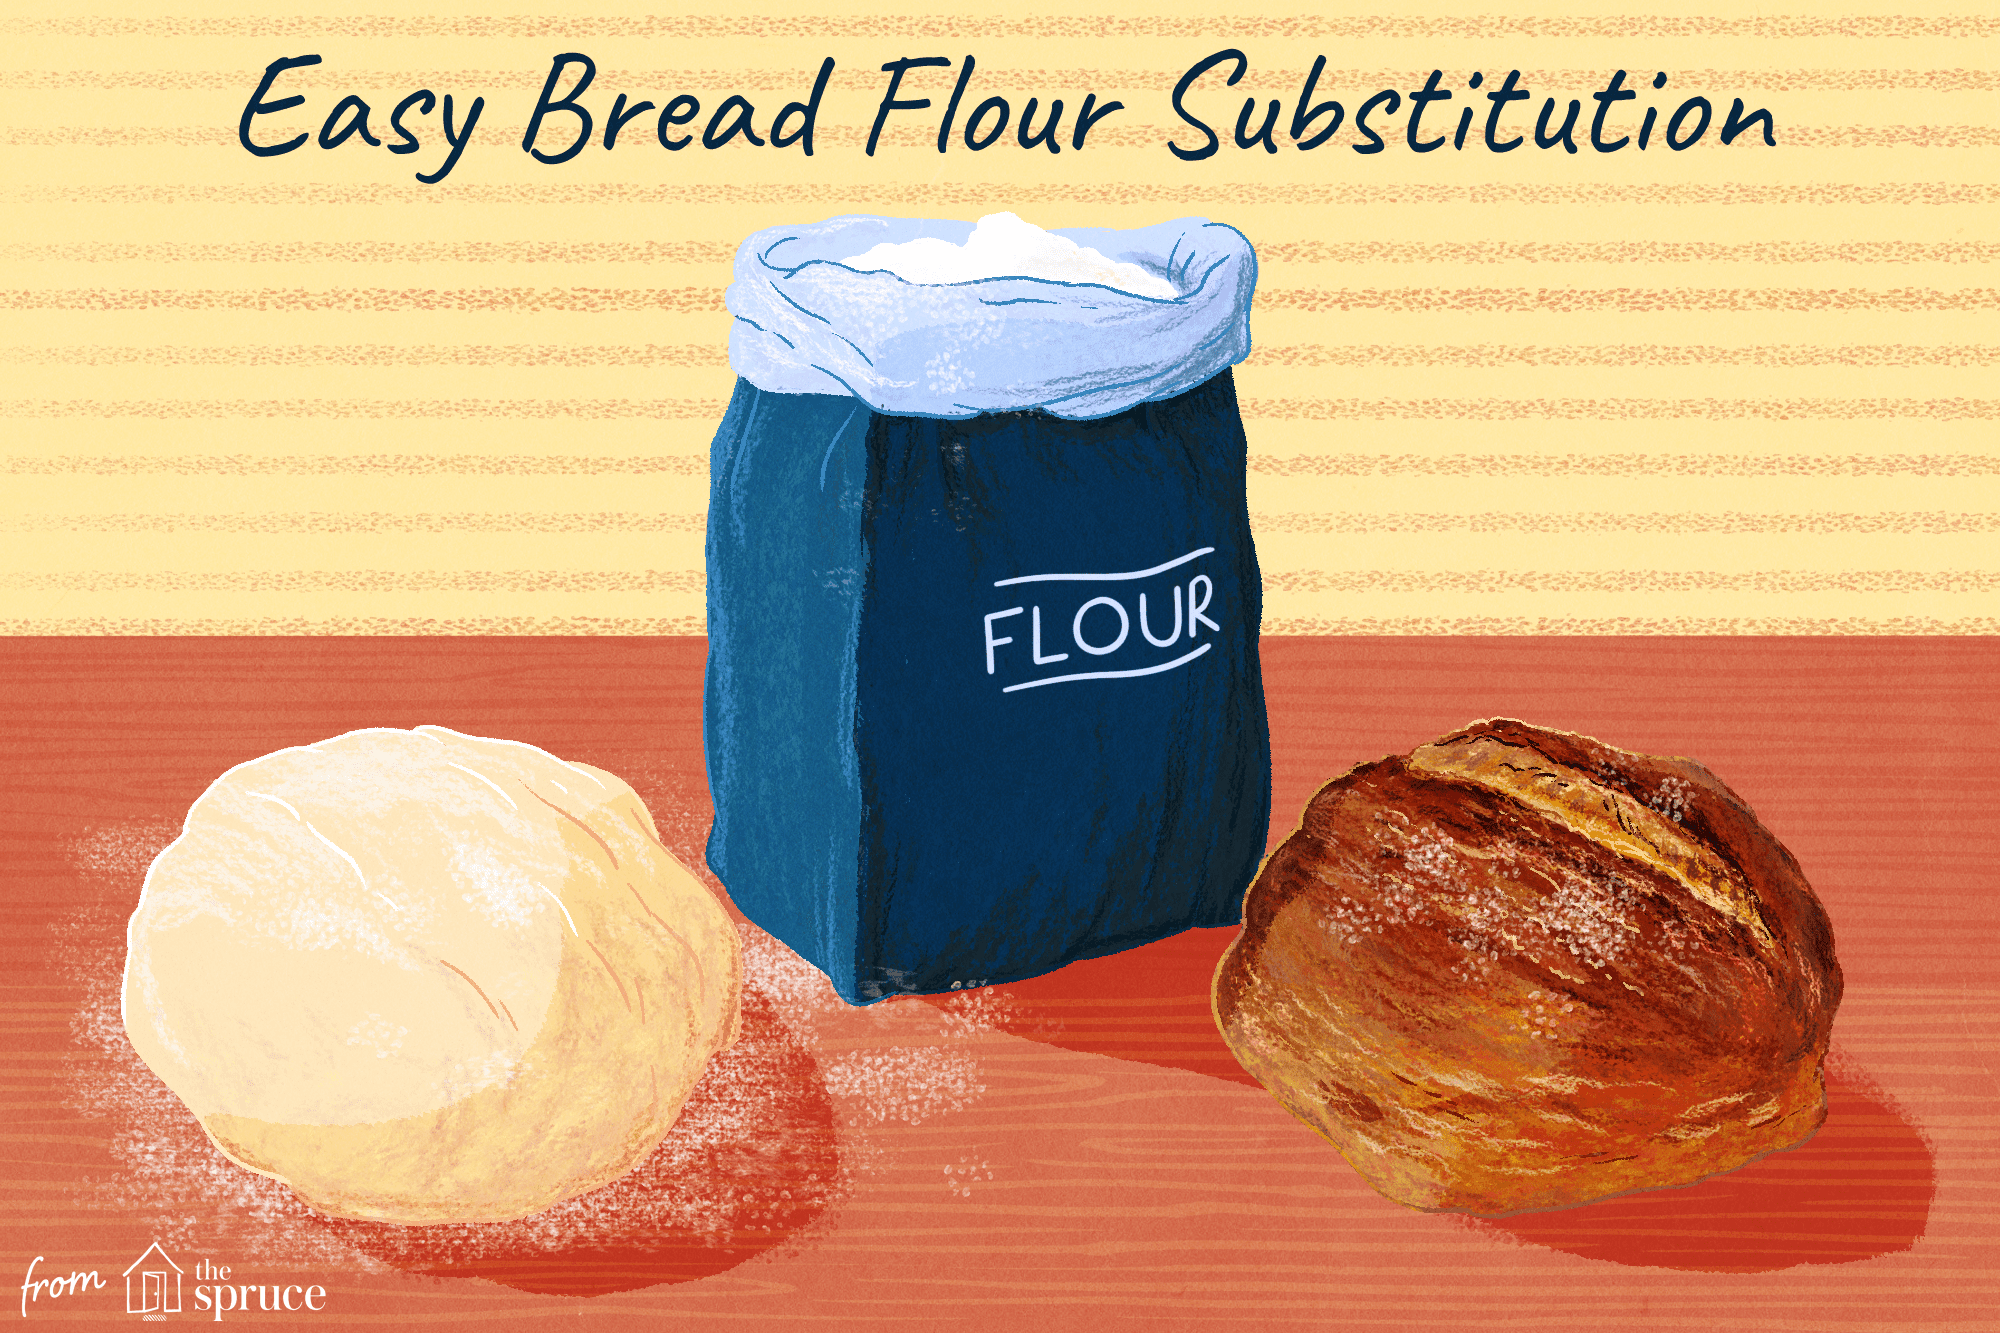 A Substitute for Bread Flour